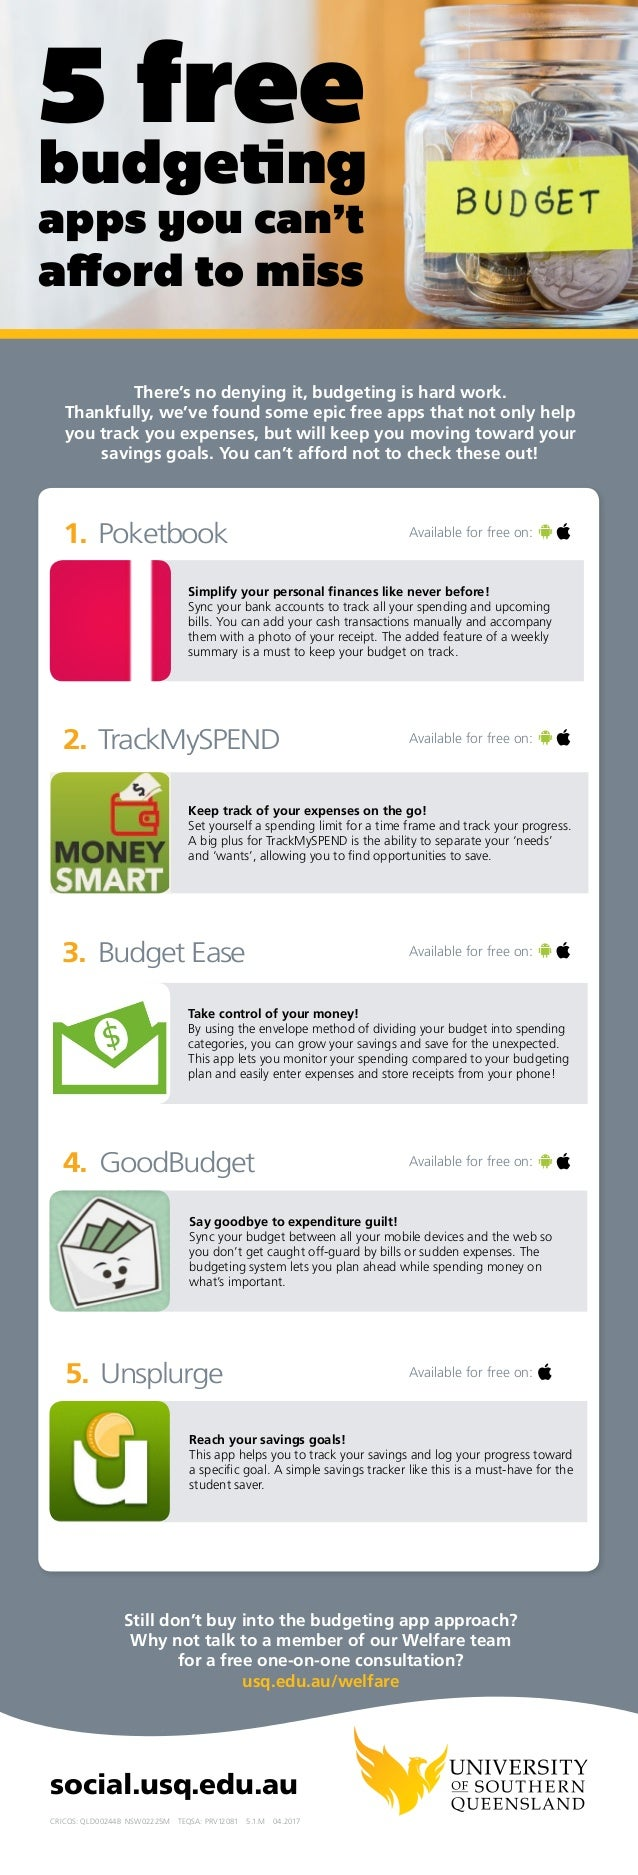 Poketbook TrackMySPEND Budget Ease GoodBudget Unsplurge 1. 2. 3. 4. 5. Simplify your personal finances like never before! ...